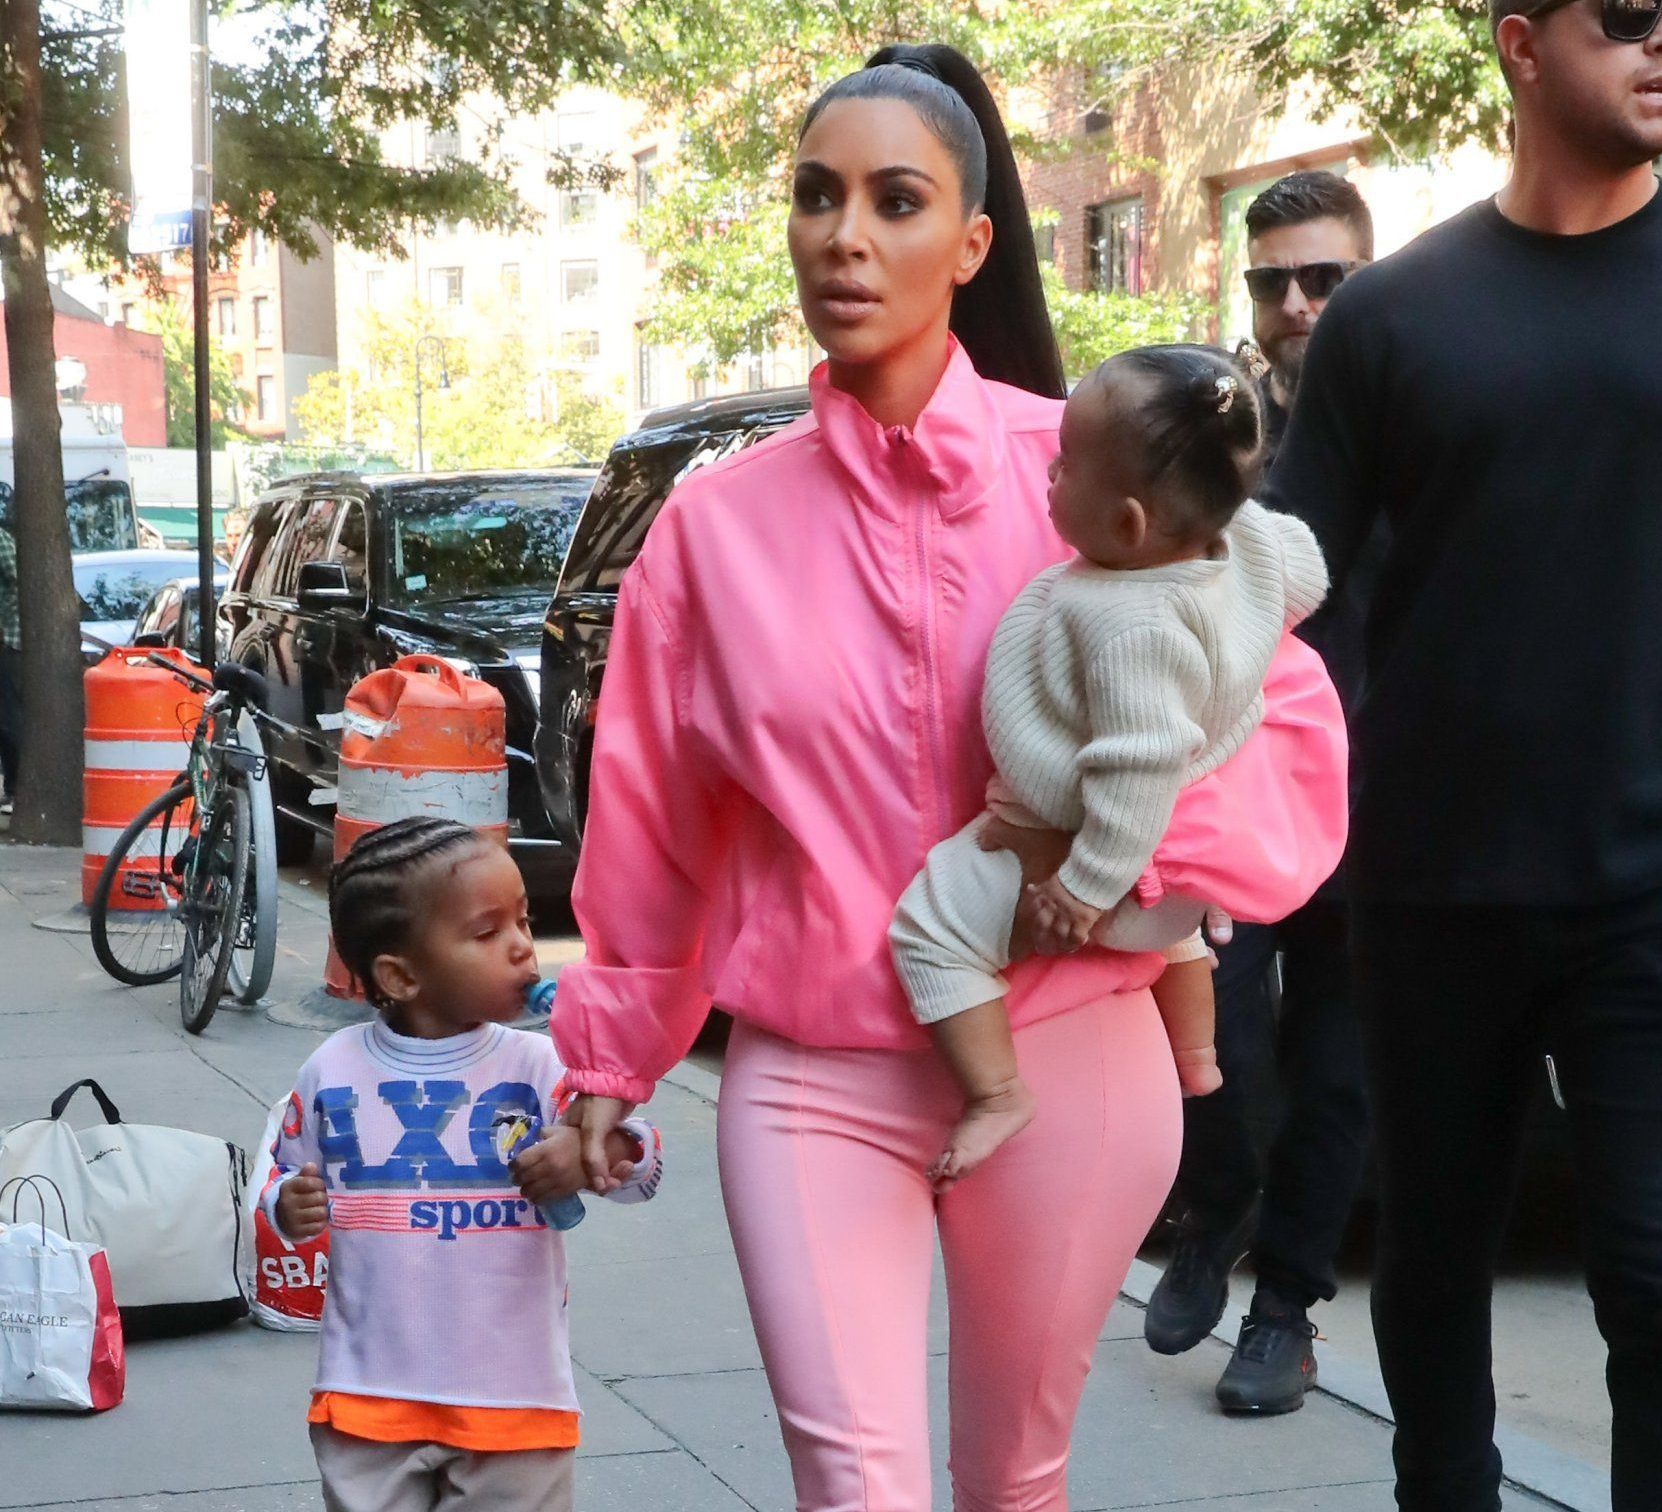 Reality star Kim Kardashian is seen arriving with her kids Saint and Chicago West at Electric Lady record studio in New York, NY. The reality star and mother is seen wearing an all pink outfit. Pictured: Kim Kardashian,Saint West,Chicago West Ref: SPL5029079 290918 NON-EXCLUSIVE Picture by: SplashNews.com Splash News and Pictures Los Angeles: 310-821-2666 New York: 212-619-2666 London: 0207 644 7656 Milan: +39 02 4399 8577 Sydney: +61 02 9240 7700 photodesk@splashnews.com World Rights,